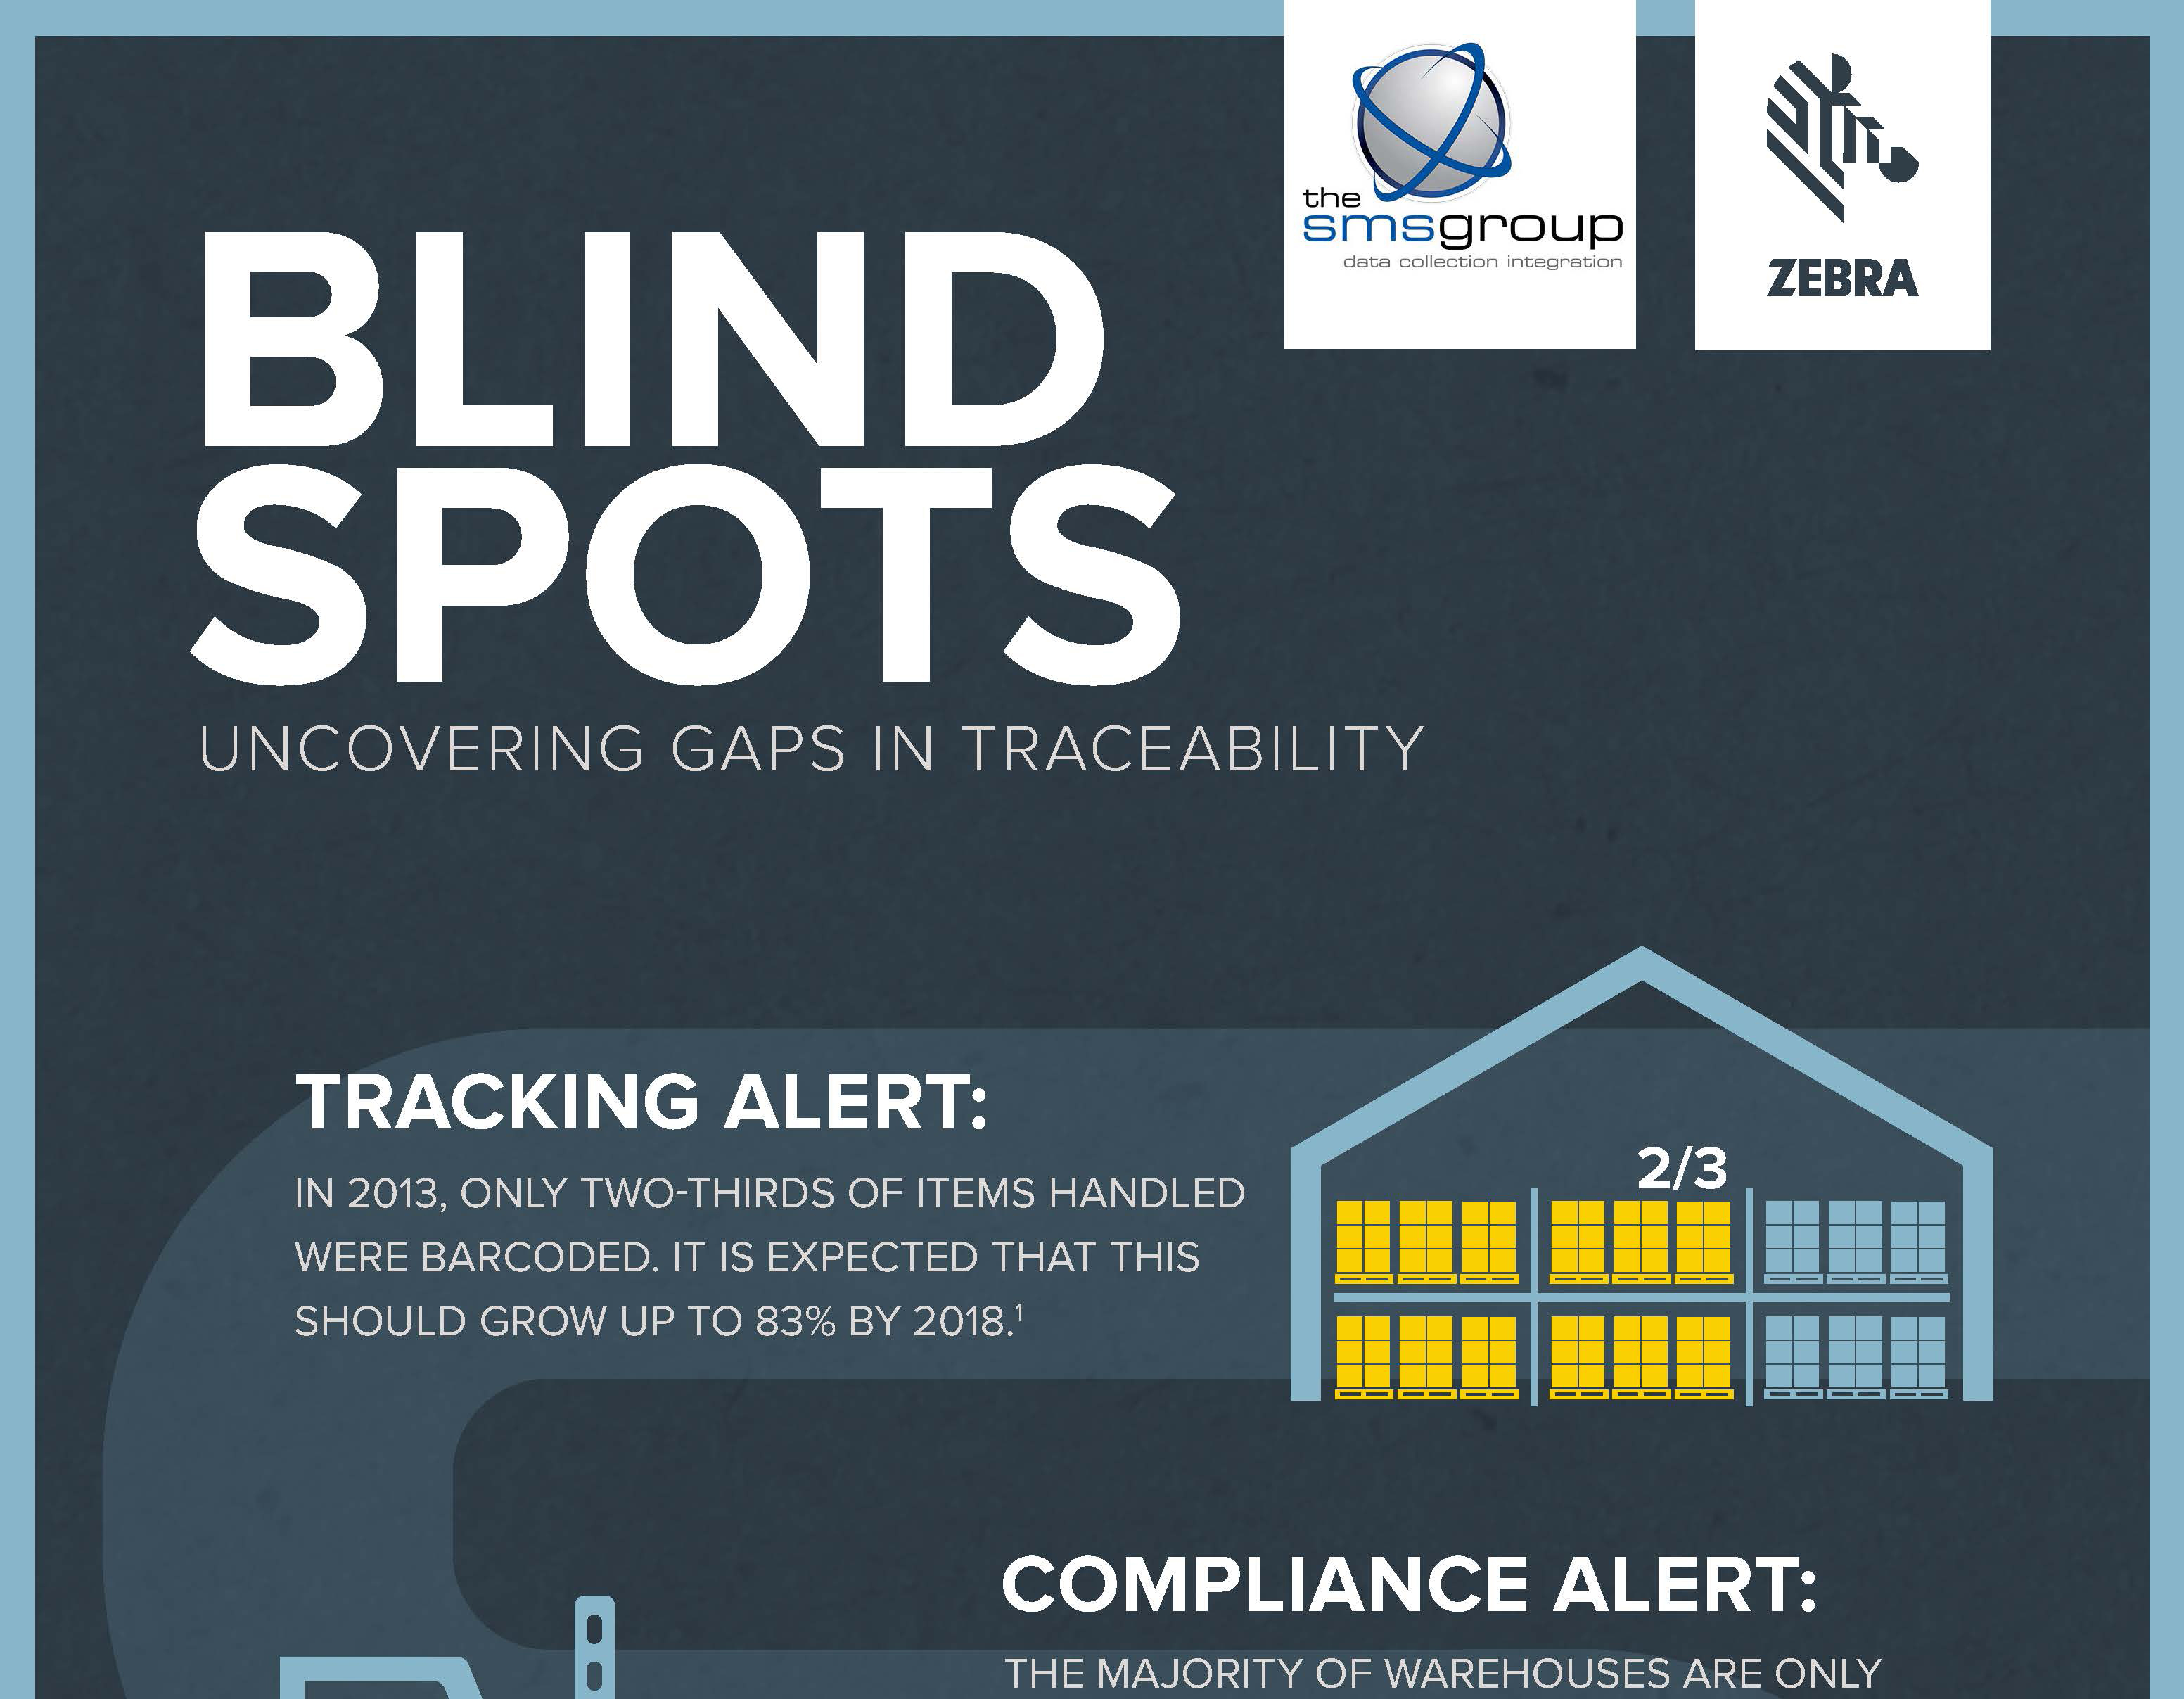 Blind Spots: Uncovering the Gaps in Traceability